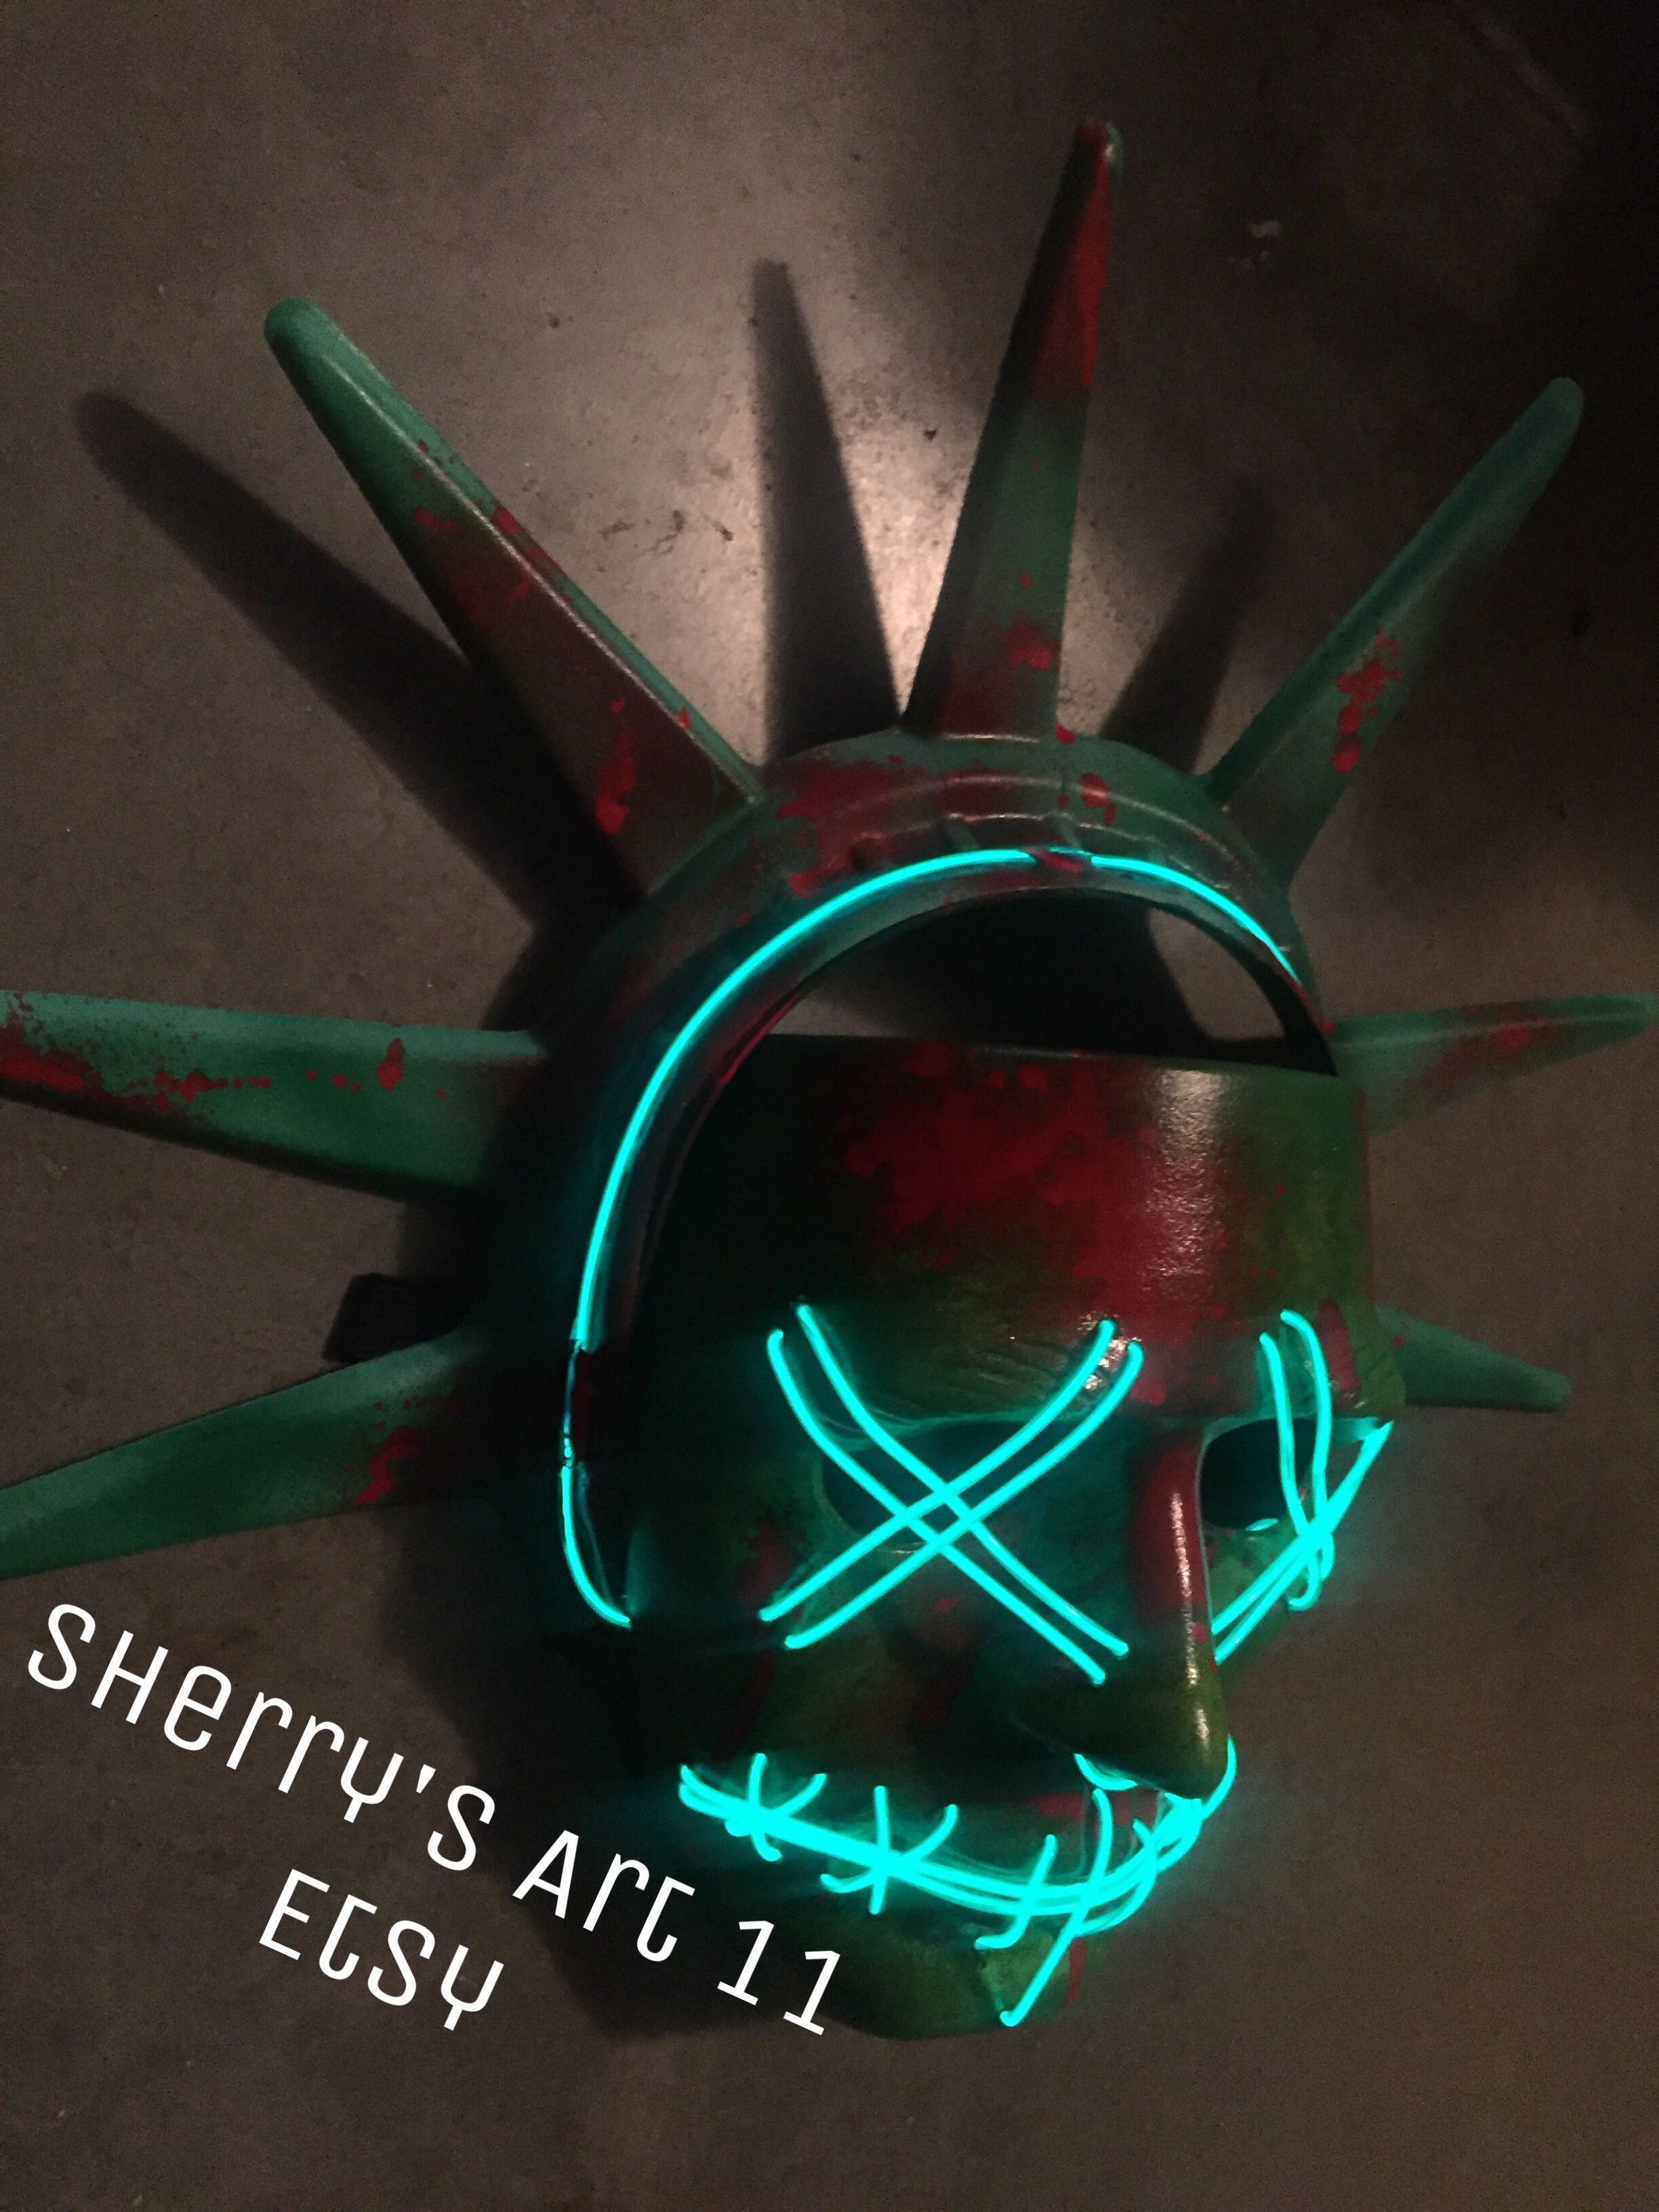 Pin by Sherry Percifield on Masks for sale! Masks for